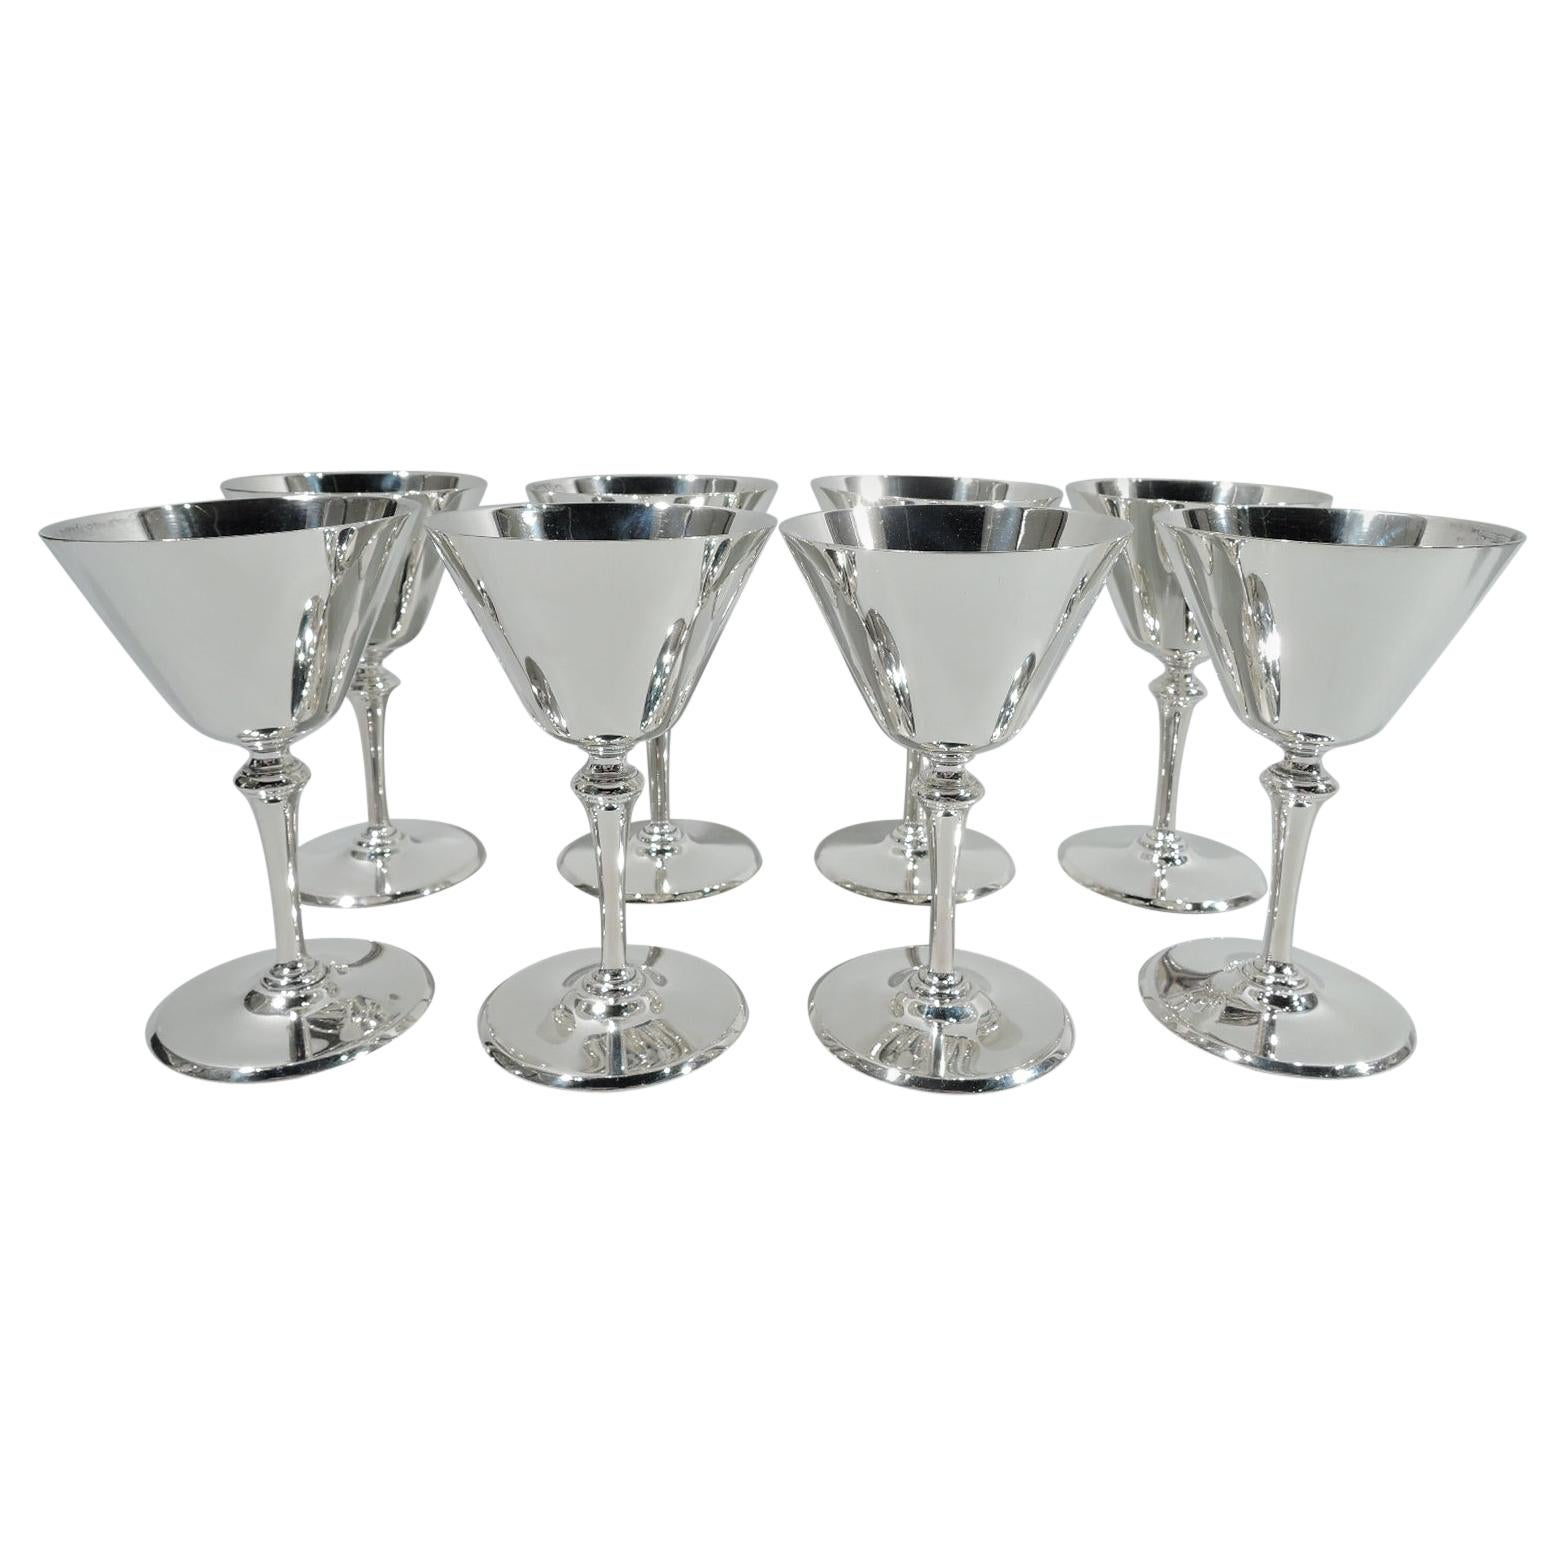 Set of 8 Fabulous Tiffany Art Deco Sterling Silver Cocktail Cups